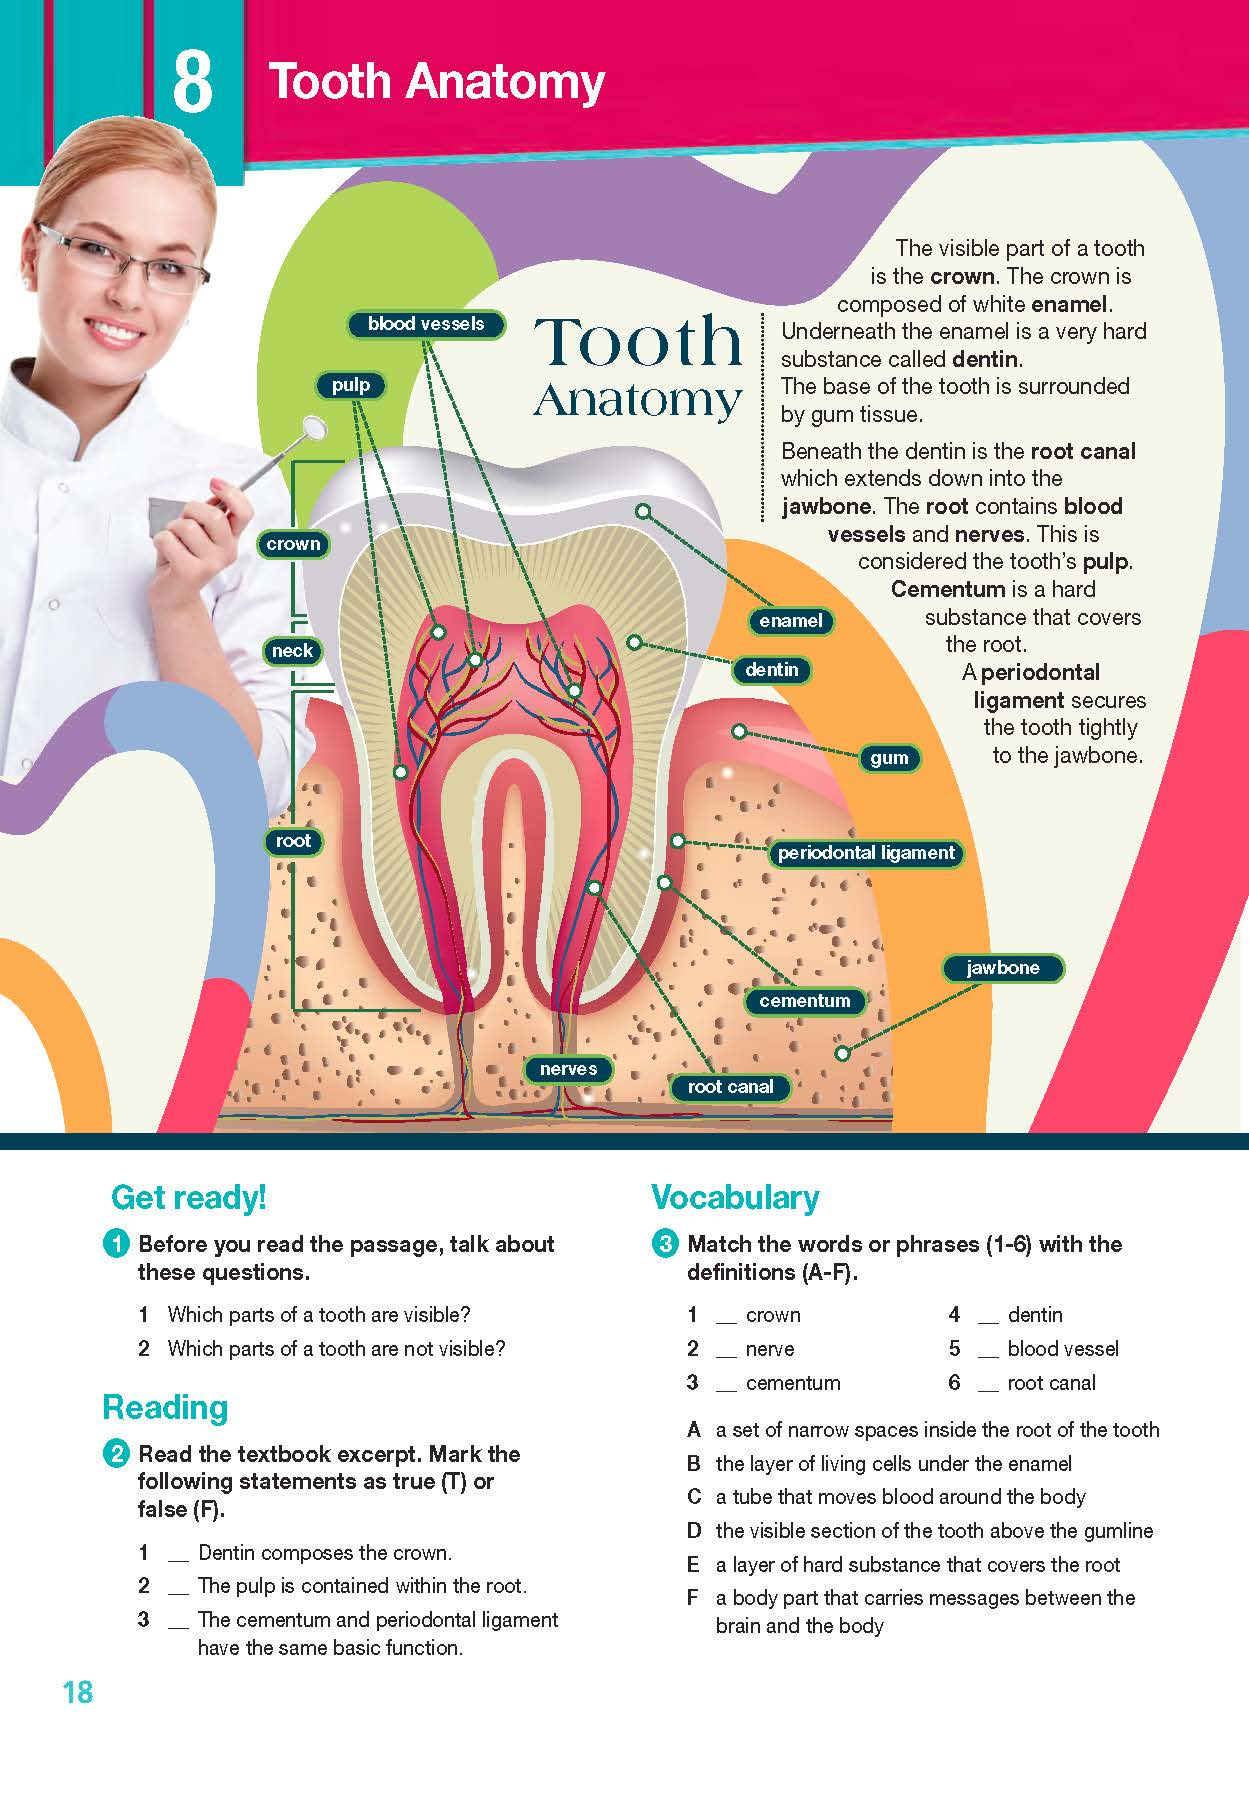 ESP English for Specific Purposes - Career Paths: Dental Hygienist- Sample Page 3